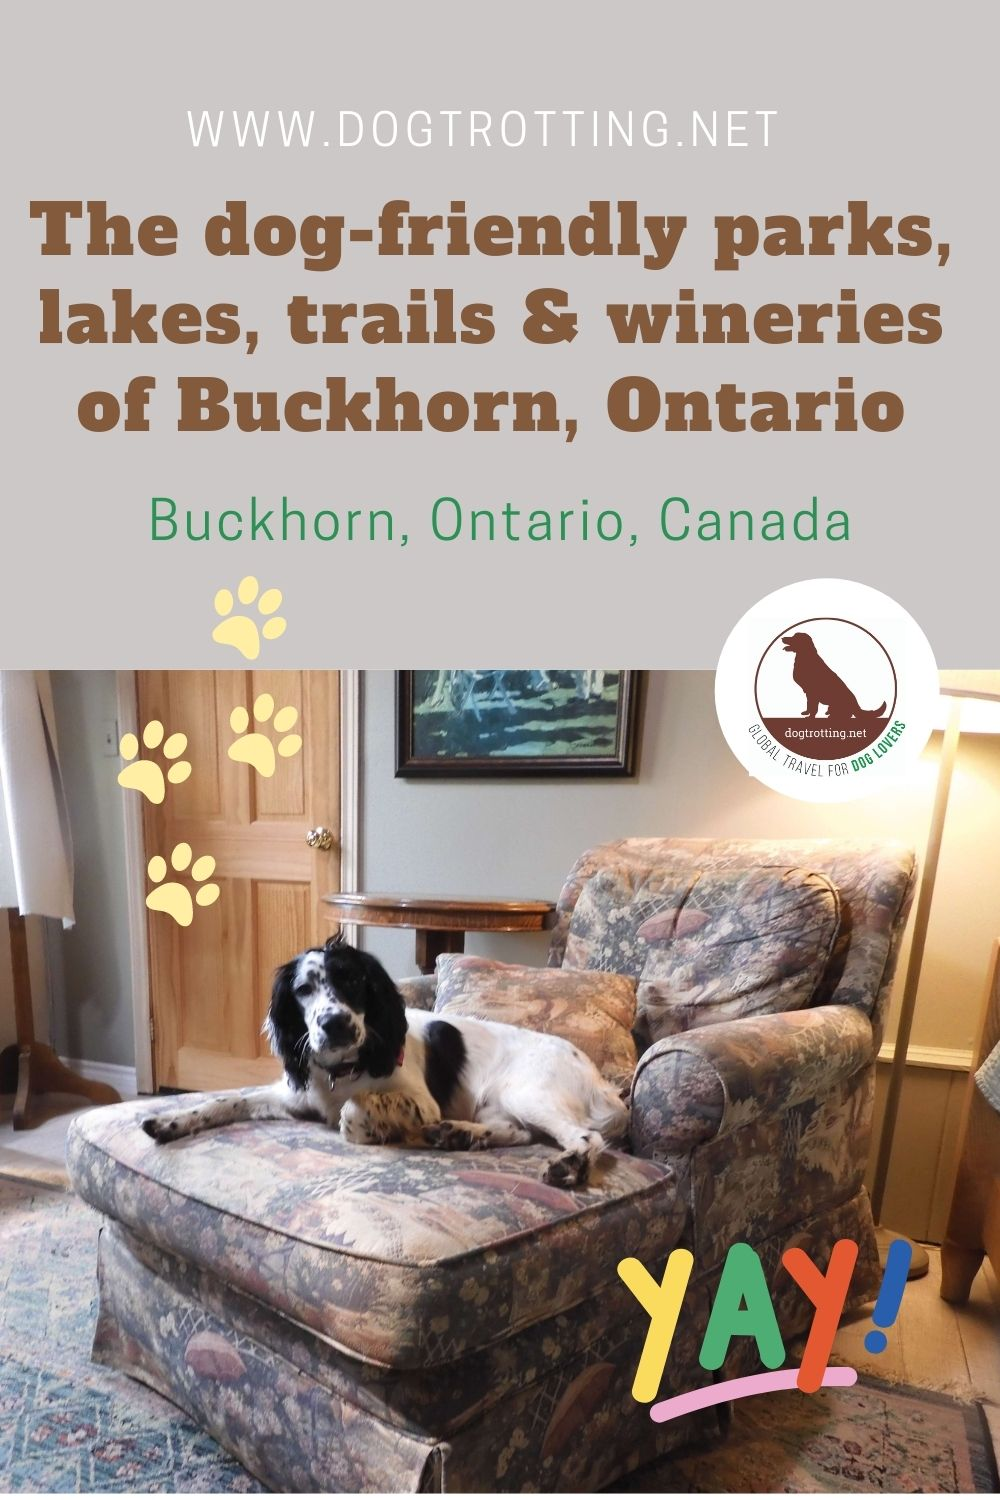 Discover Dog-friendly Buckhorn, Ontario: pet-friendly resort, winery, and provincial park perfect for pup travel